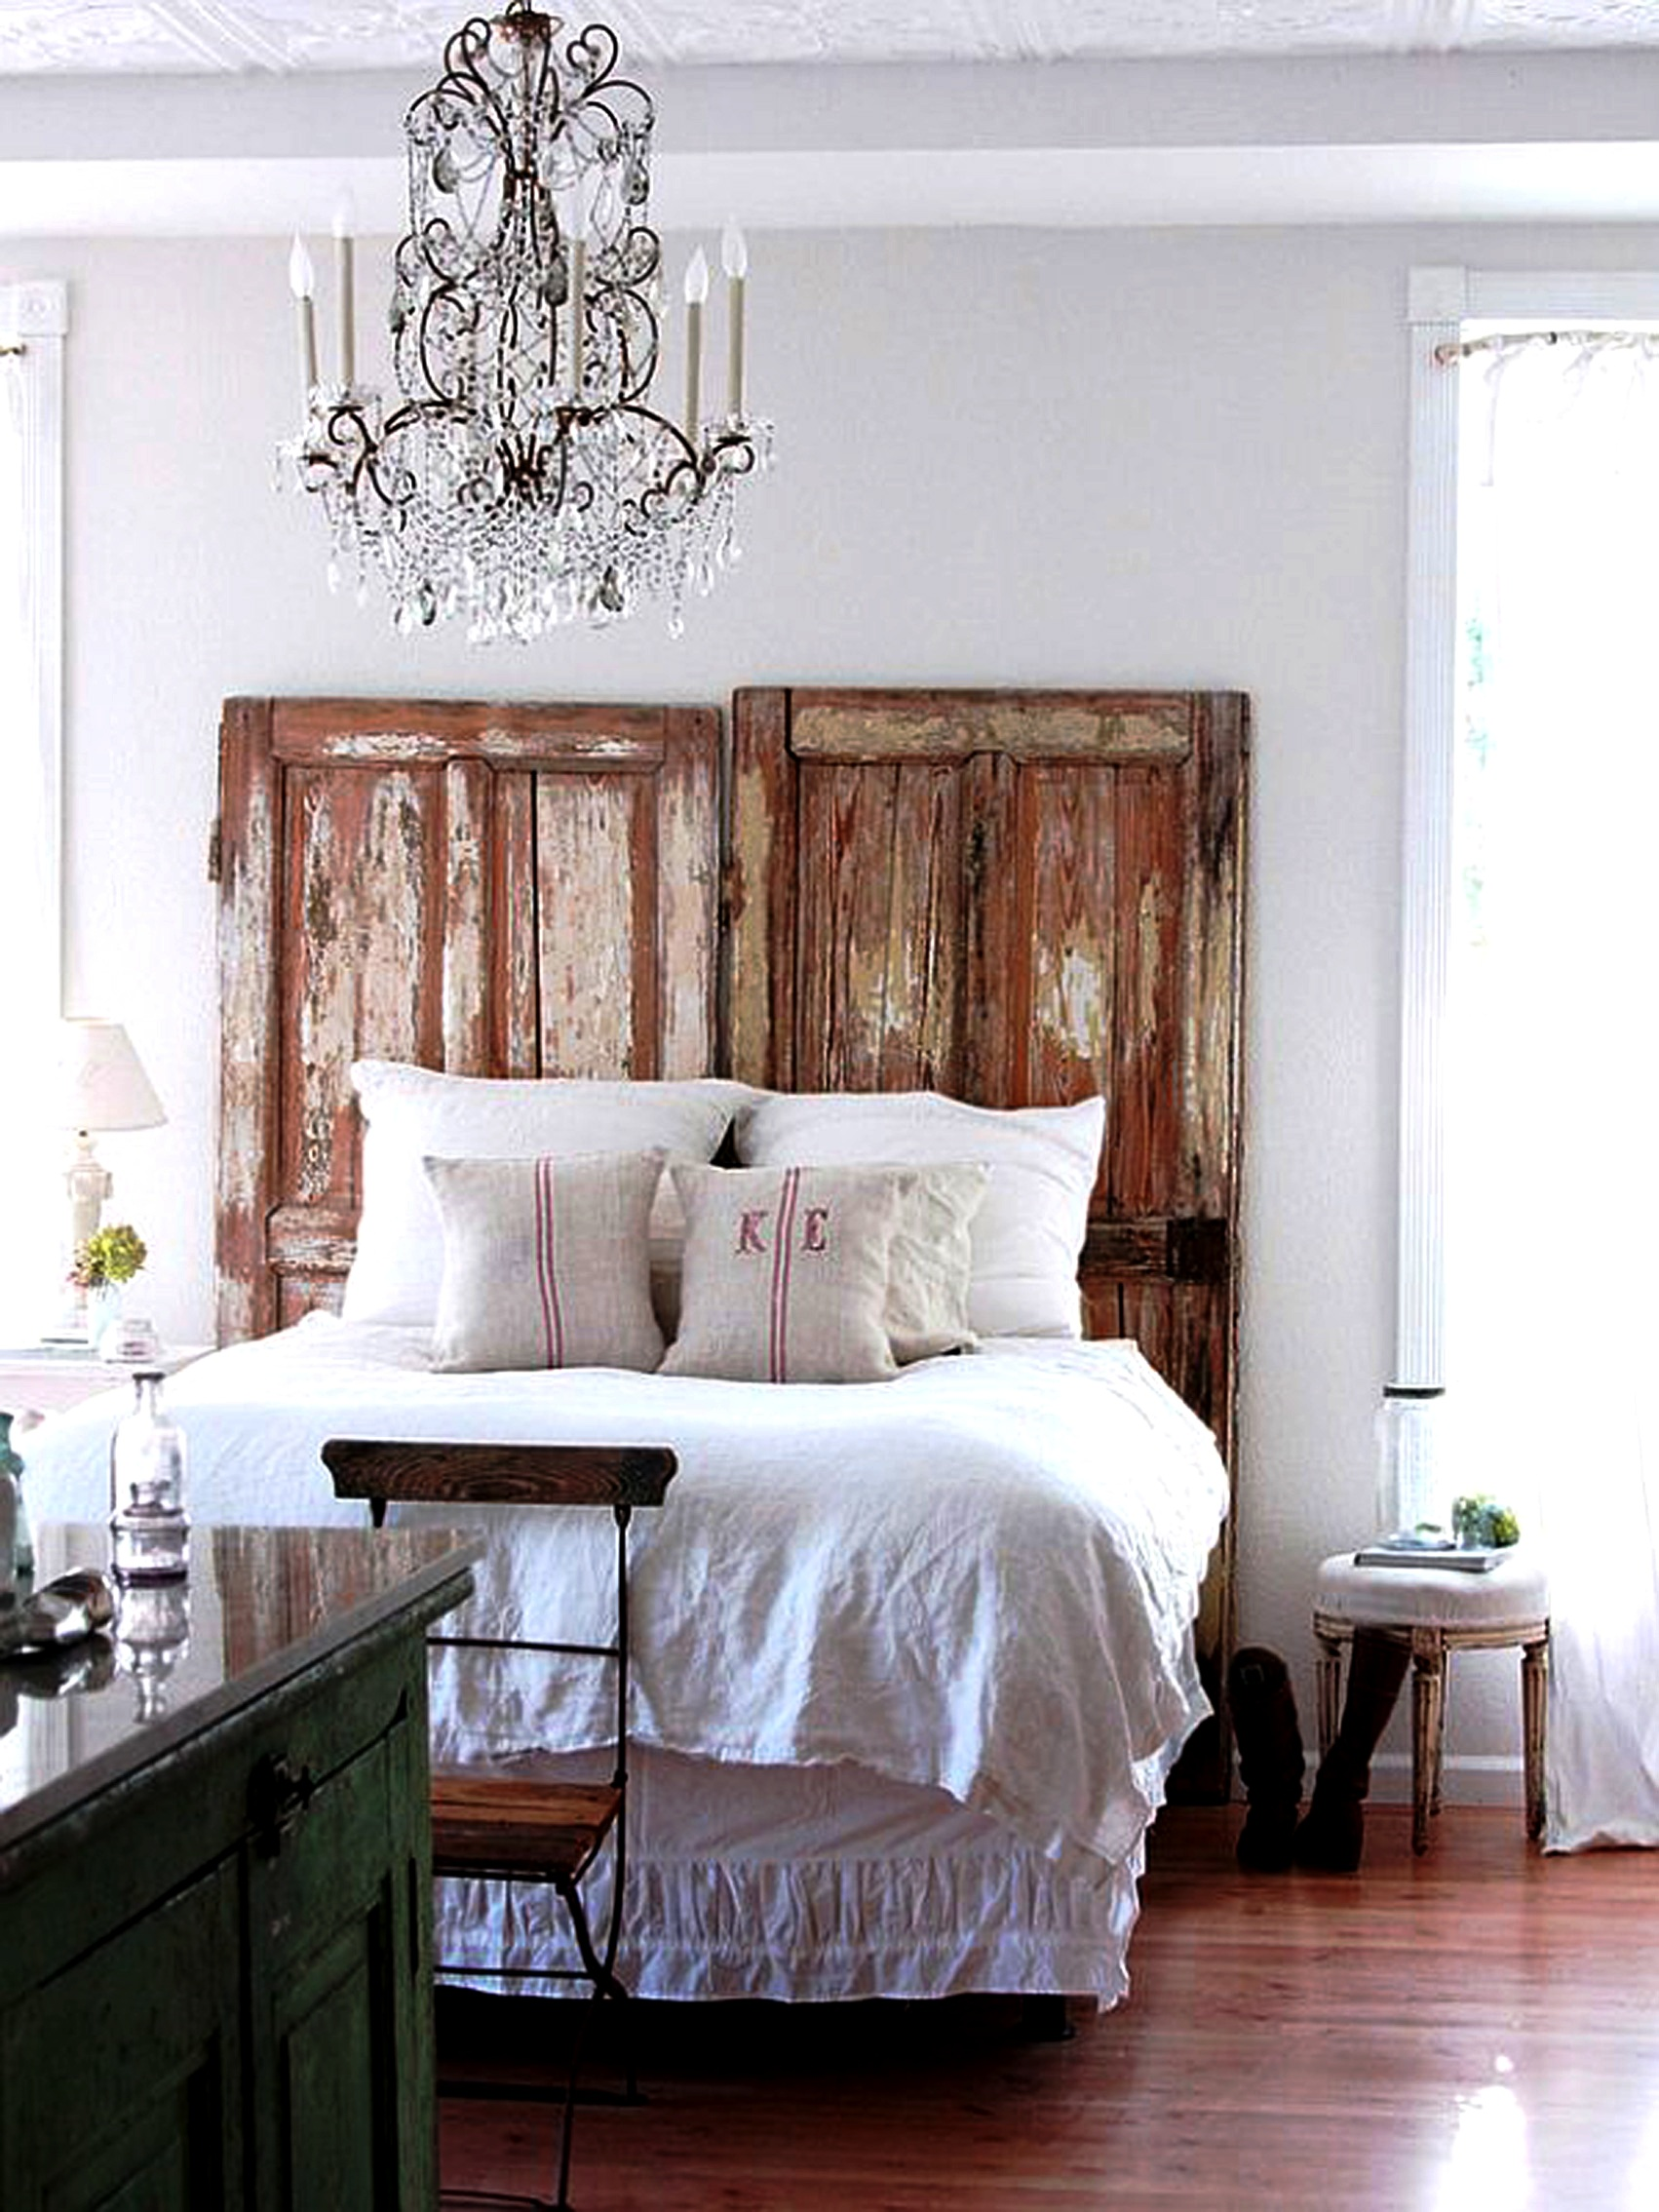 rustic chic home decor ideas you bet your pierogi. Black Bedroom Furniture Sets. Home Design Ideas